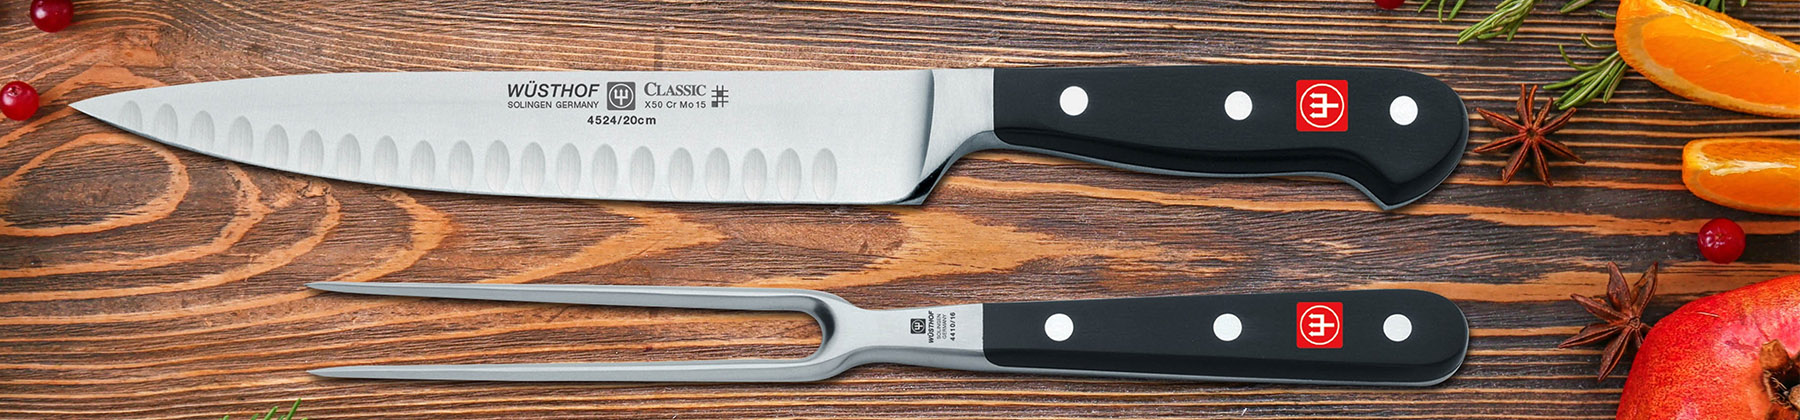 Photo of carving knife sets.